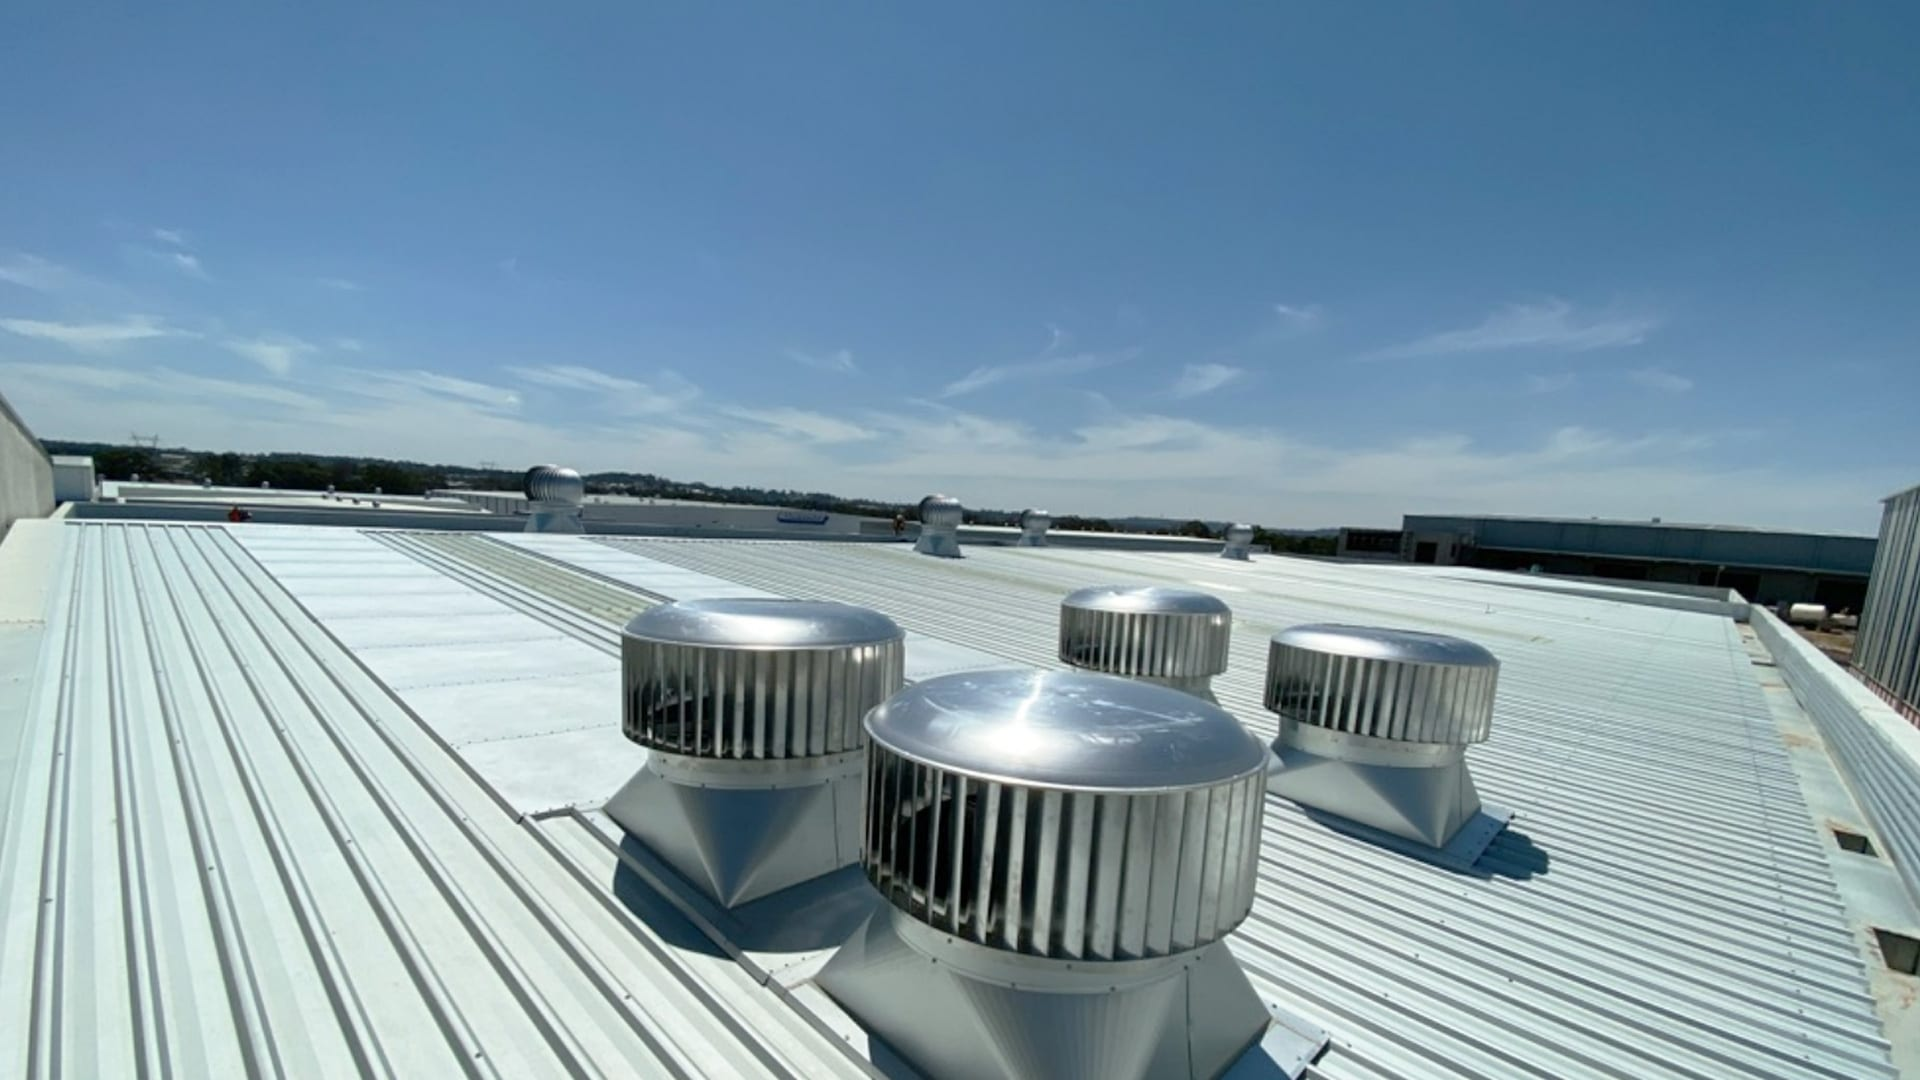 Commercial Roof Ventilation Installation Chillex Roof